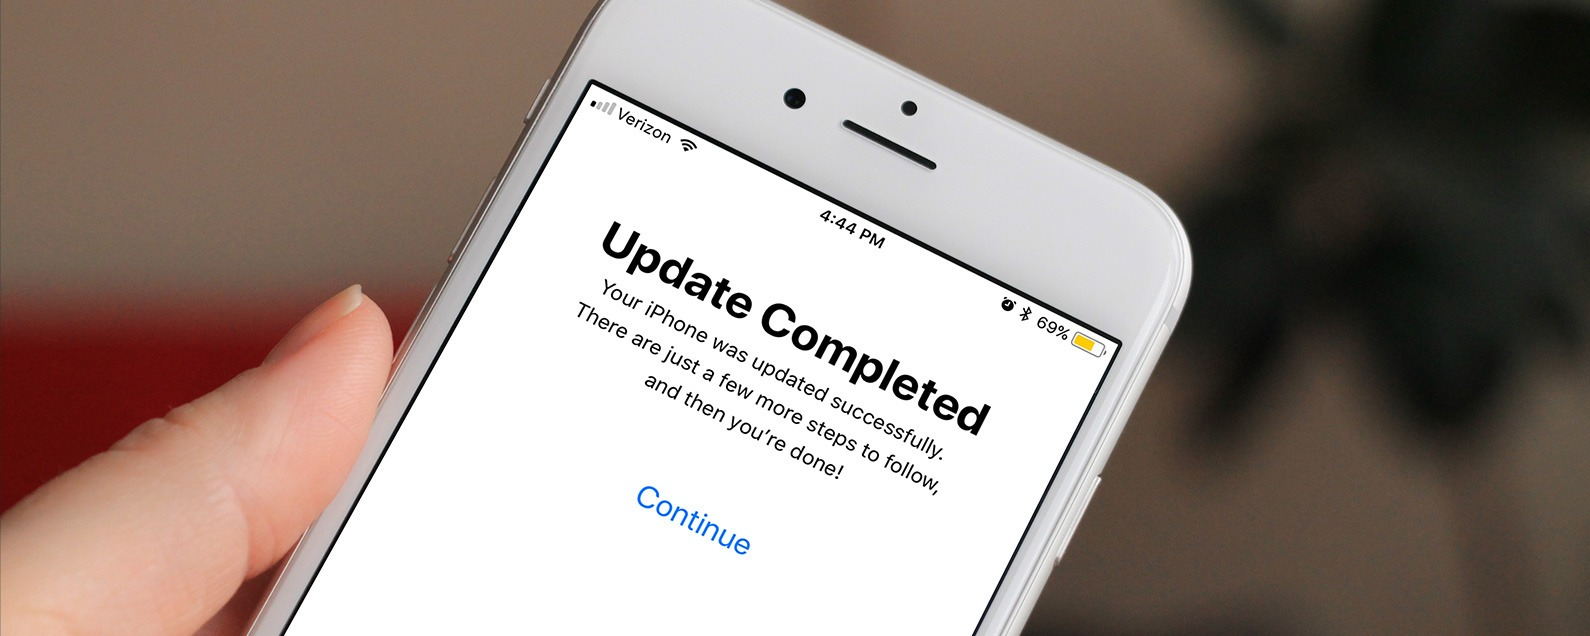 iOS 12: How to Update to Apple's Latest Version of iOS on iPhone